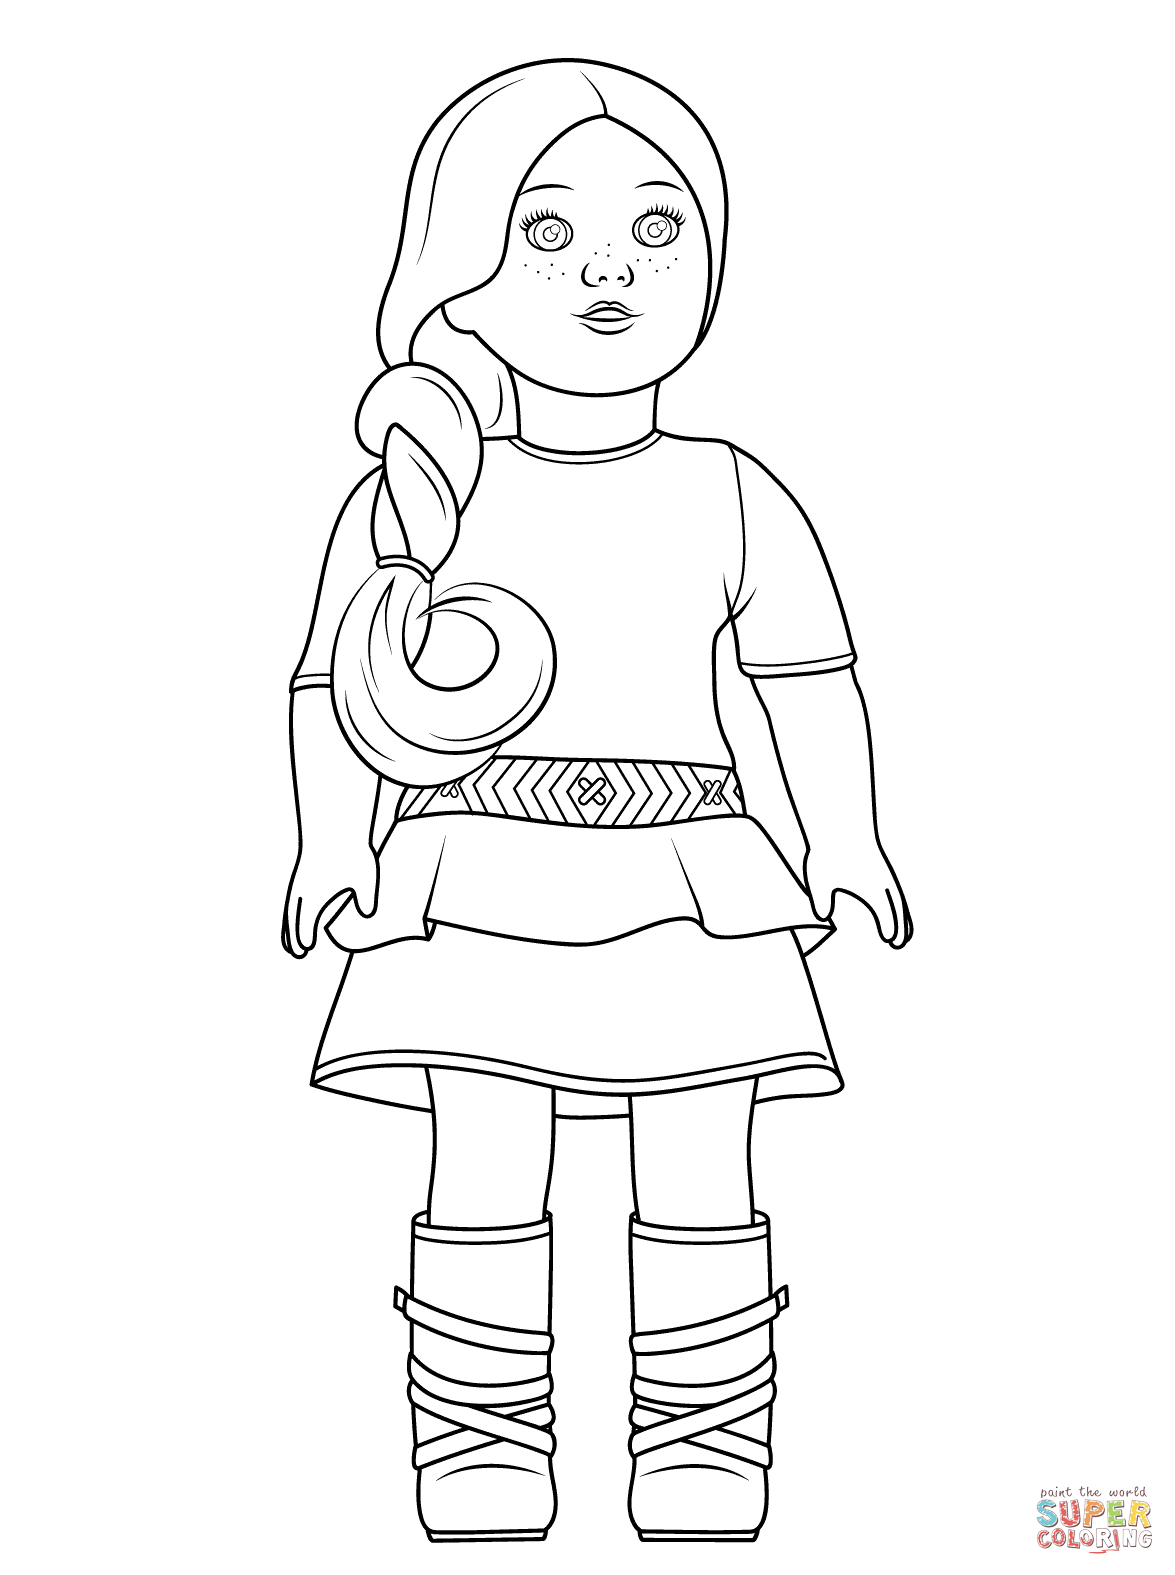 1175x1575 American Girl Doll Coloring Pages To Download And Print For Free